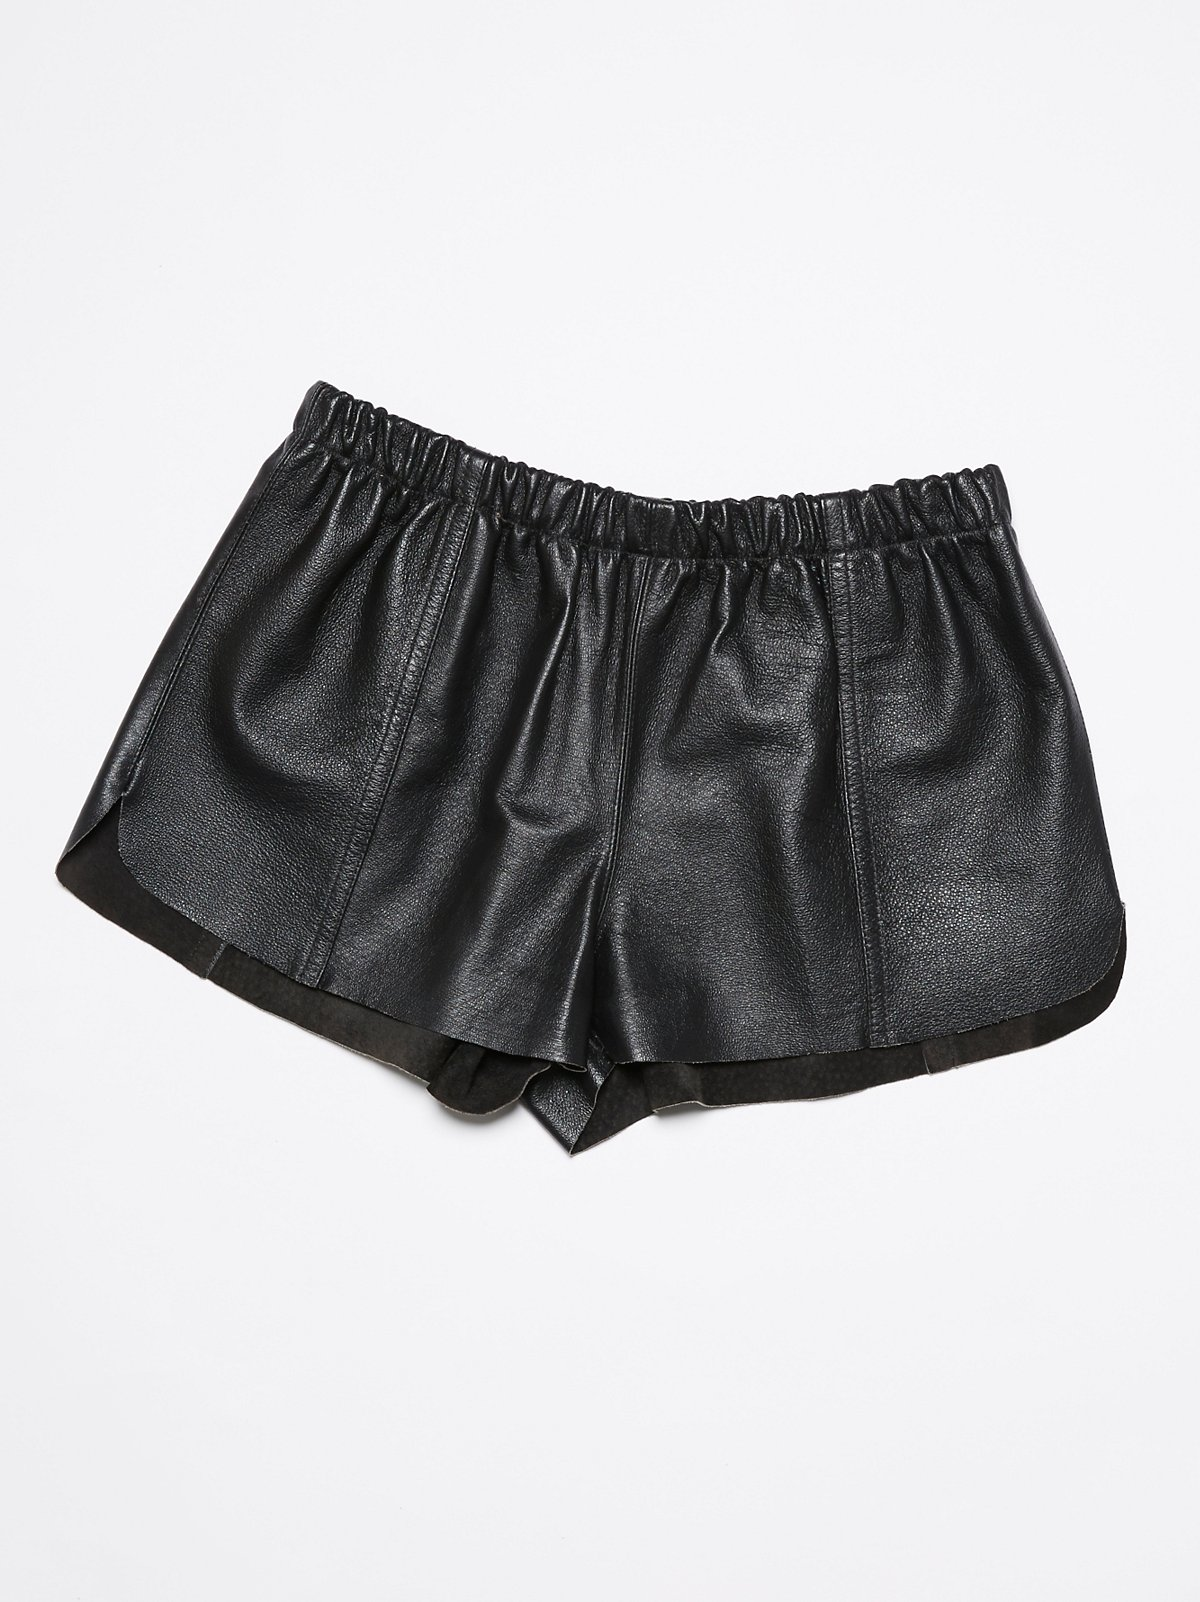 Vintage 1980s Leather Shorts